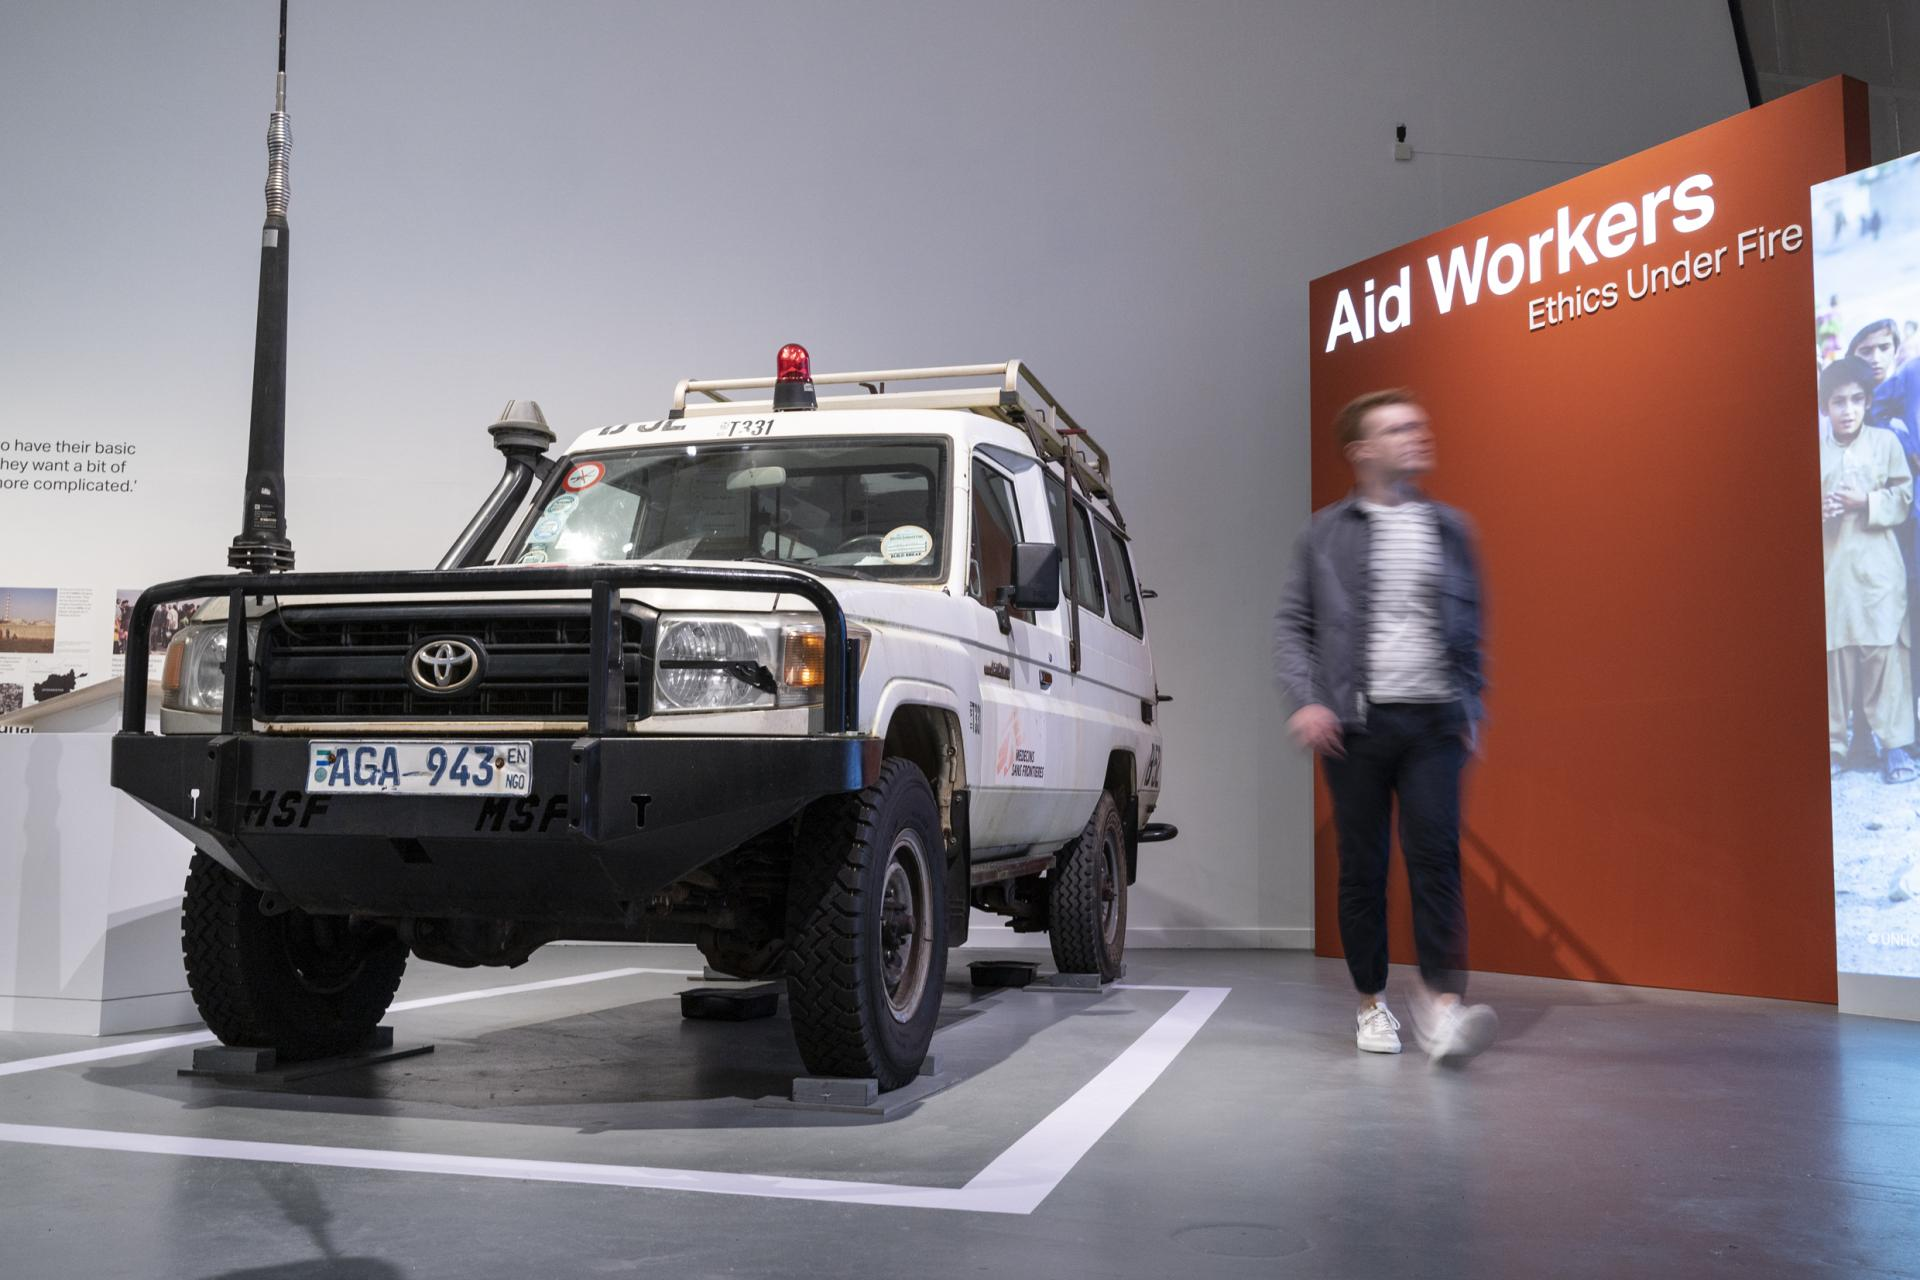 A Médecins Sans Frontières Land Cruiser in Aid Workers Exhibition